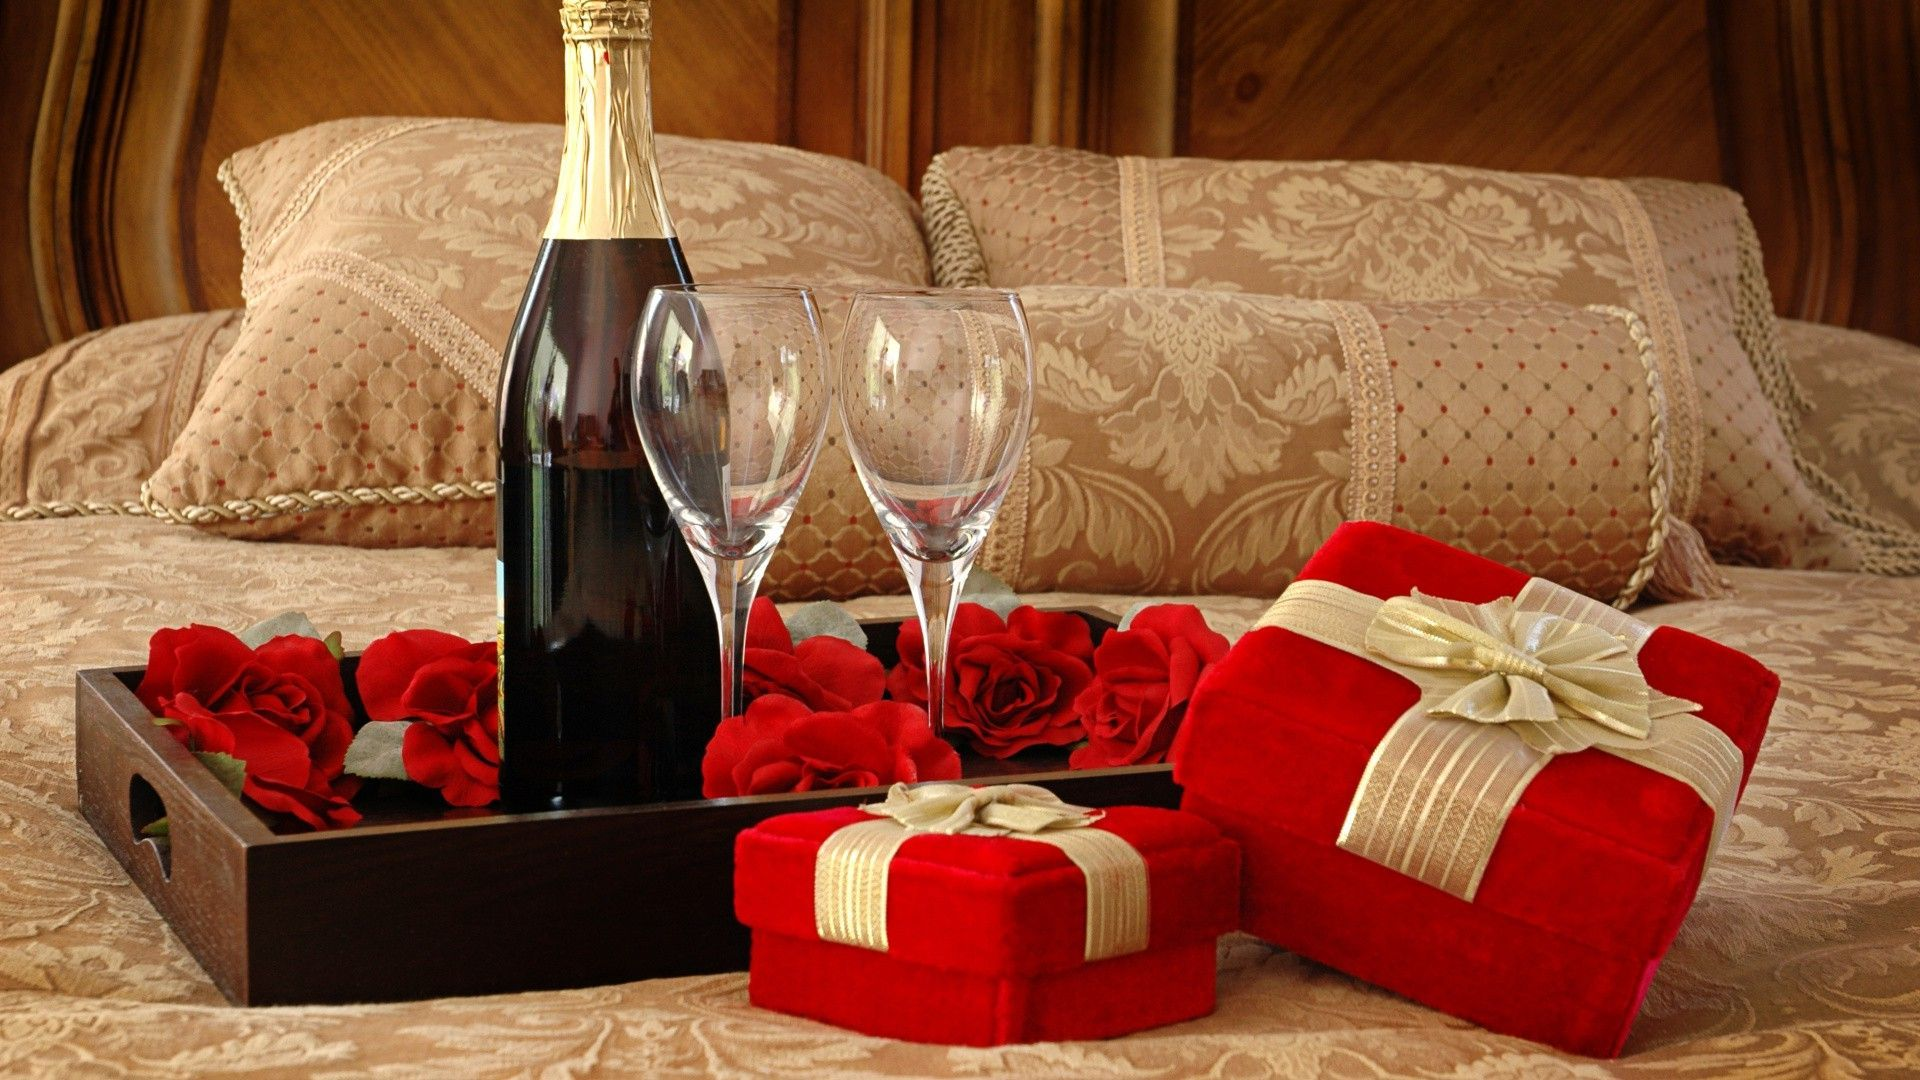 How to Choose Romantic Presents